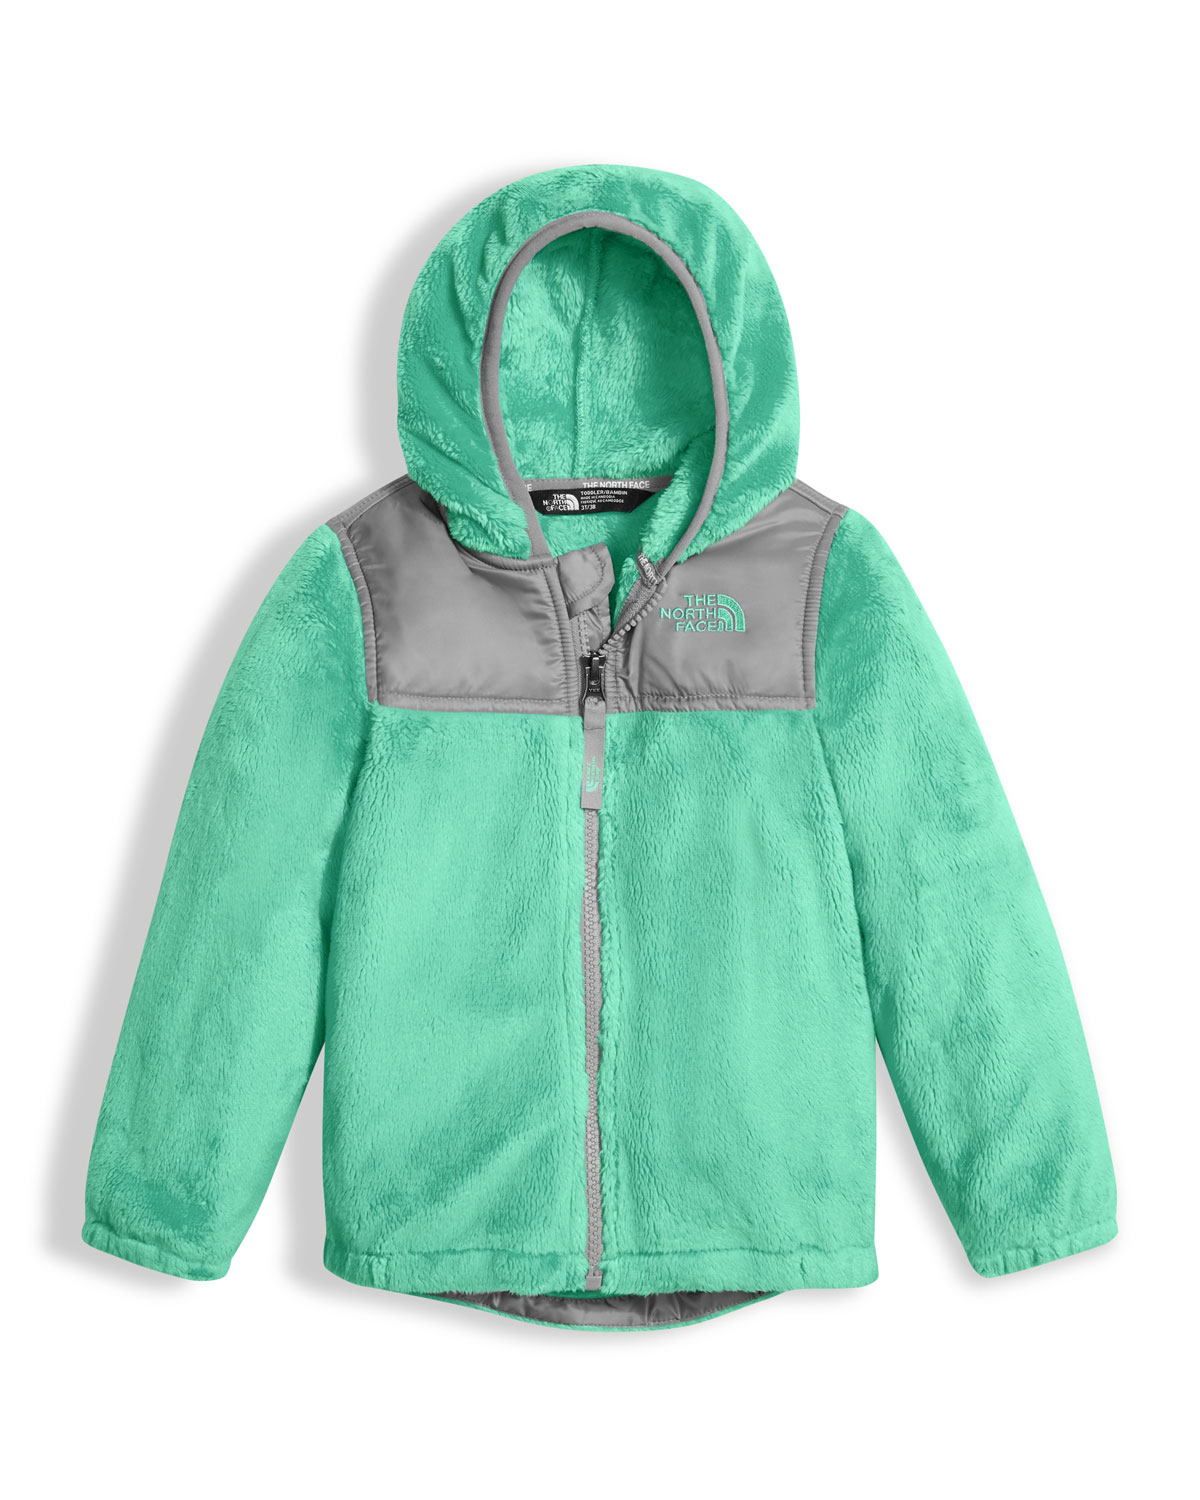 The North Face Girls' Oso Fleece Zip Hoodie, Green, Size 2 - 4T